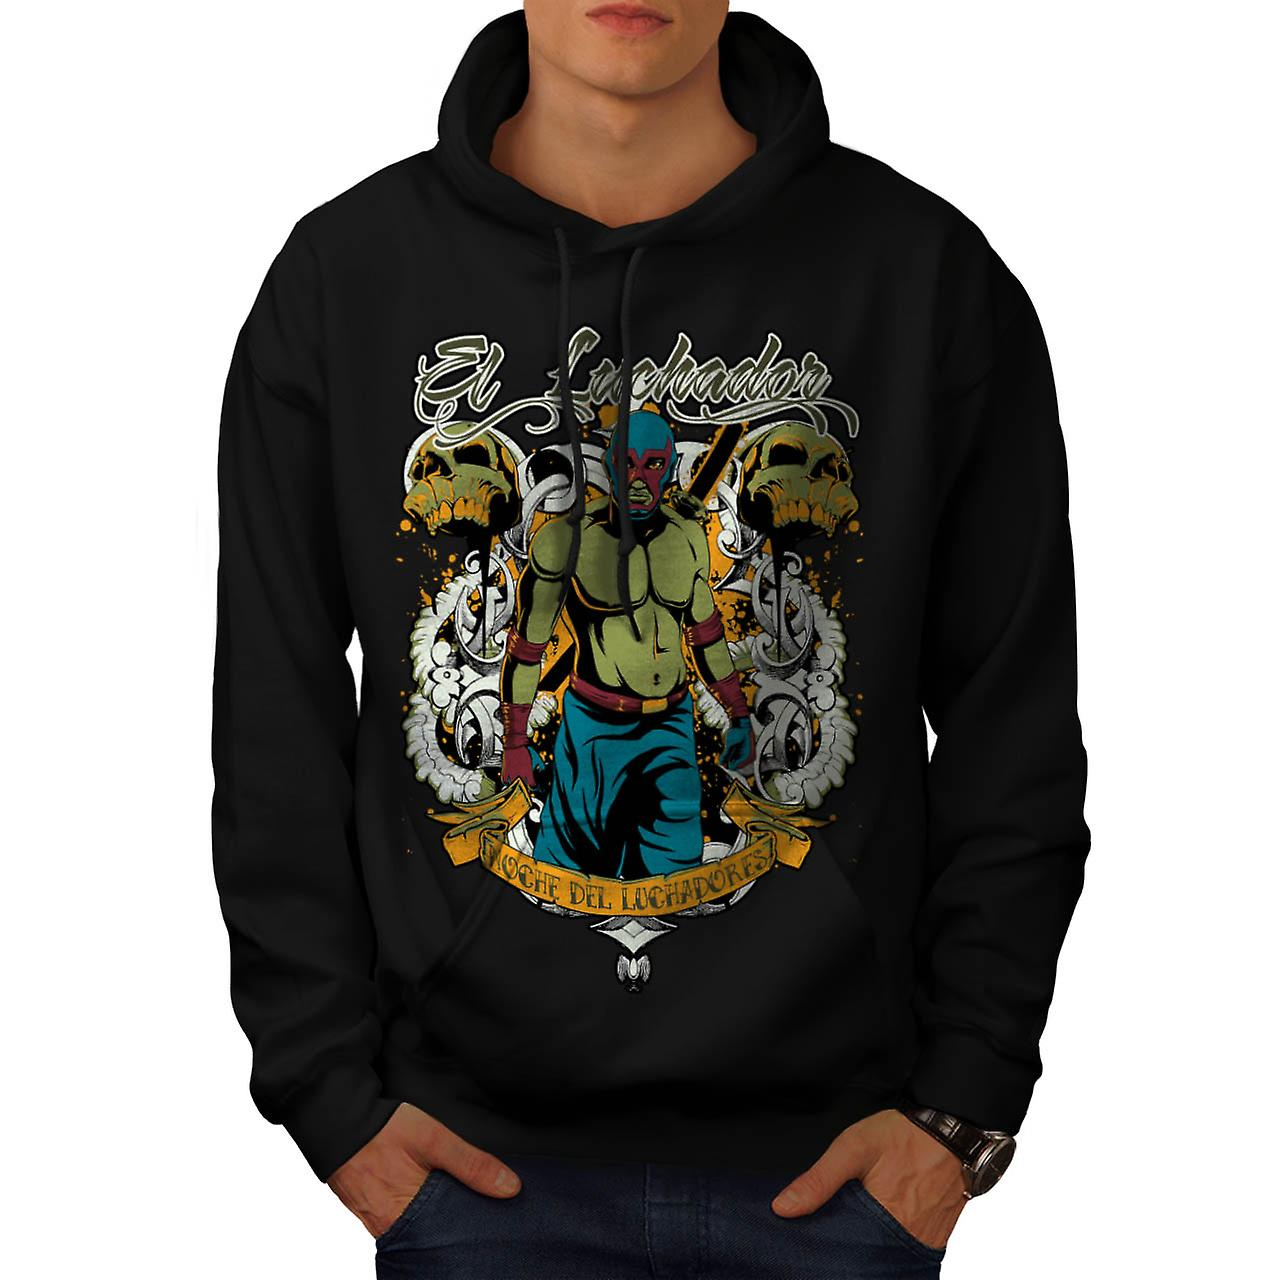 El Luchador Wrestler Mask Champ Men Black Hoodie | Wellcoda